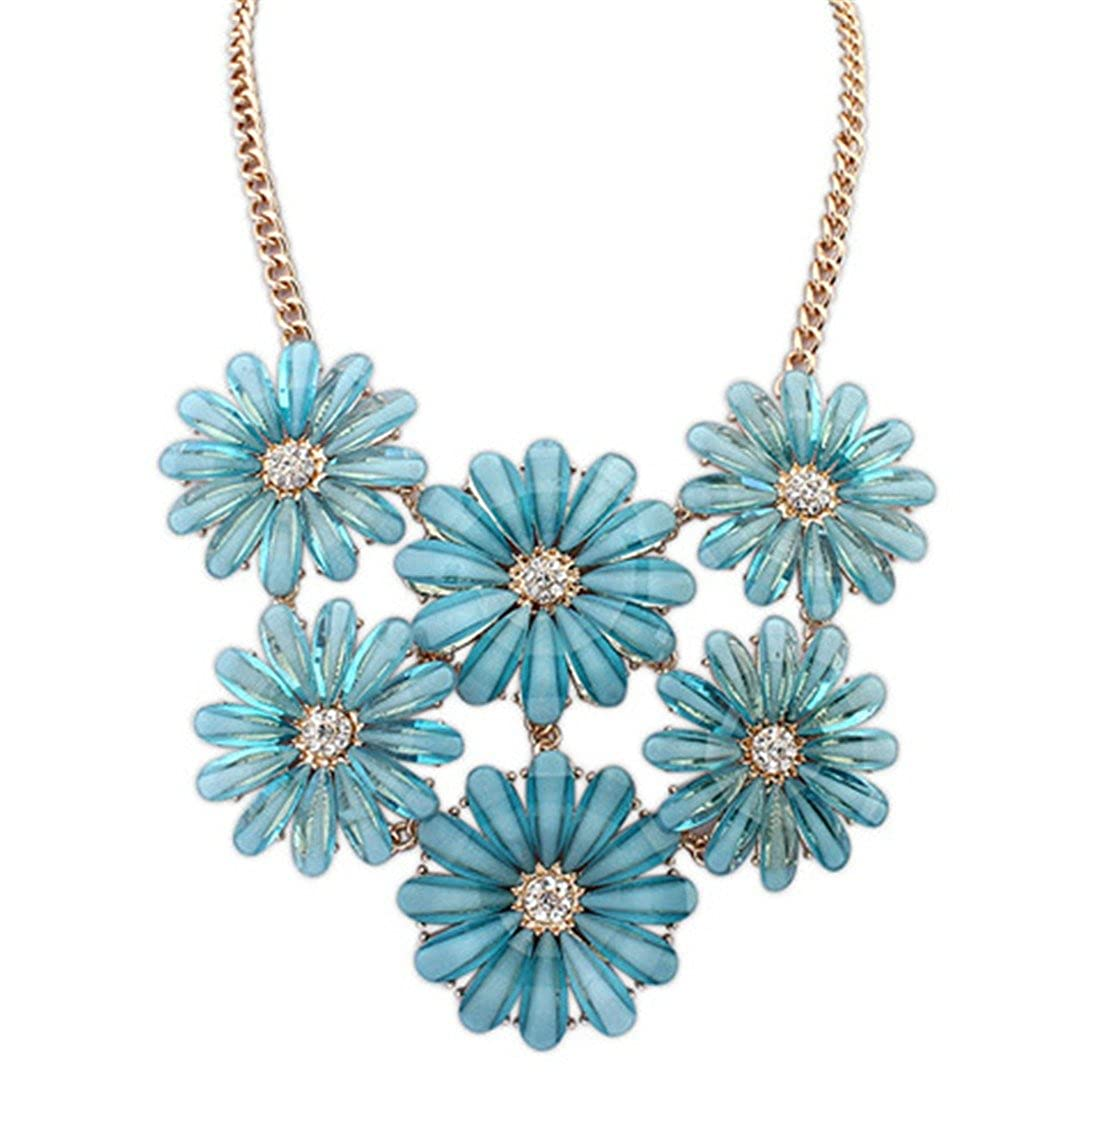 Qiyun Flower Daisy Multiple Layers Resin Beaded Choker Collar Bib Statement Necklace Fleur Marguerite Re sine De Multiples Couches Collier W005N1322